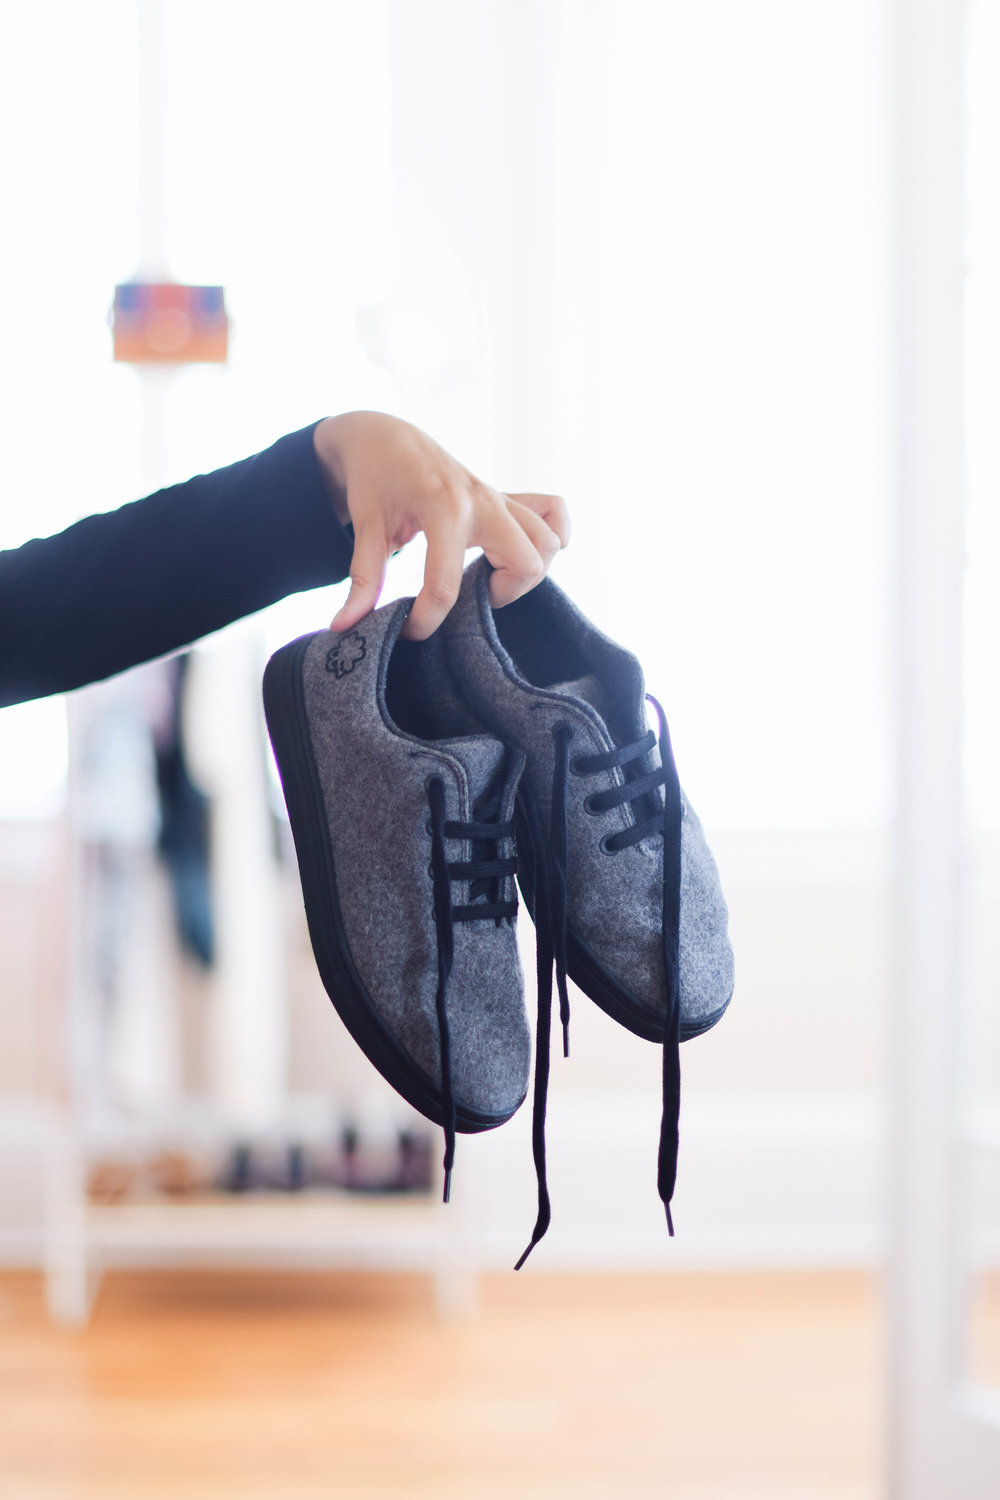 Eco-friendly sneakers // A Week Of Sustainable Maternity Outfits With Natalie Kay Smith From Sustainably Chic on The Good Trade